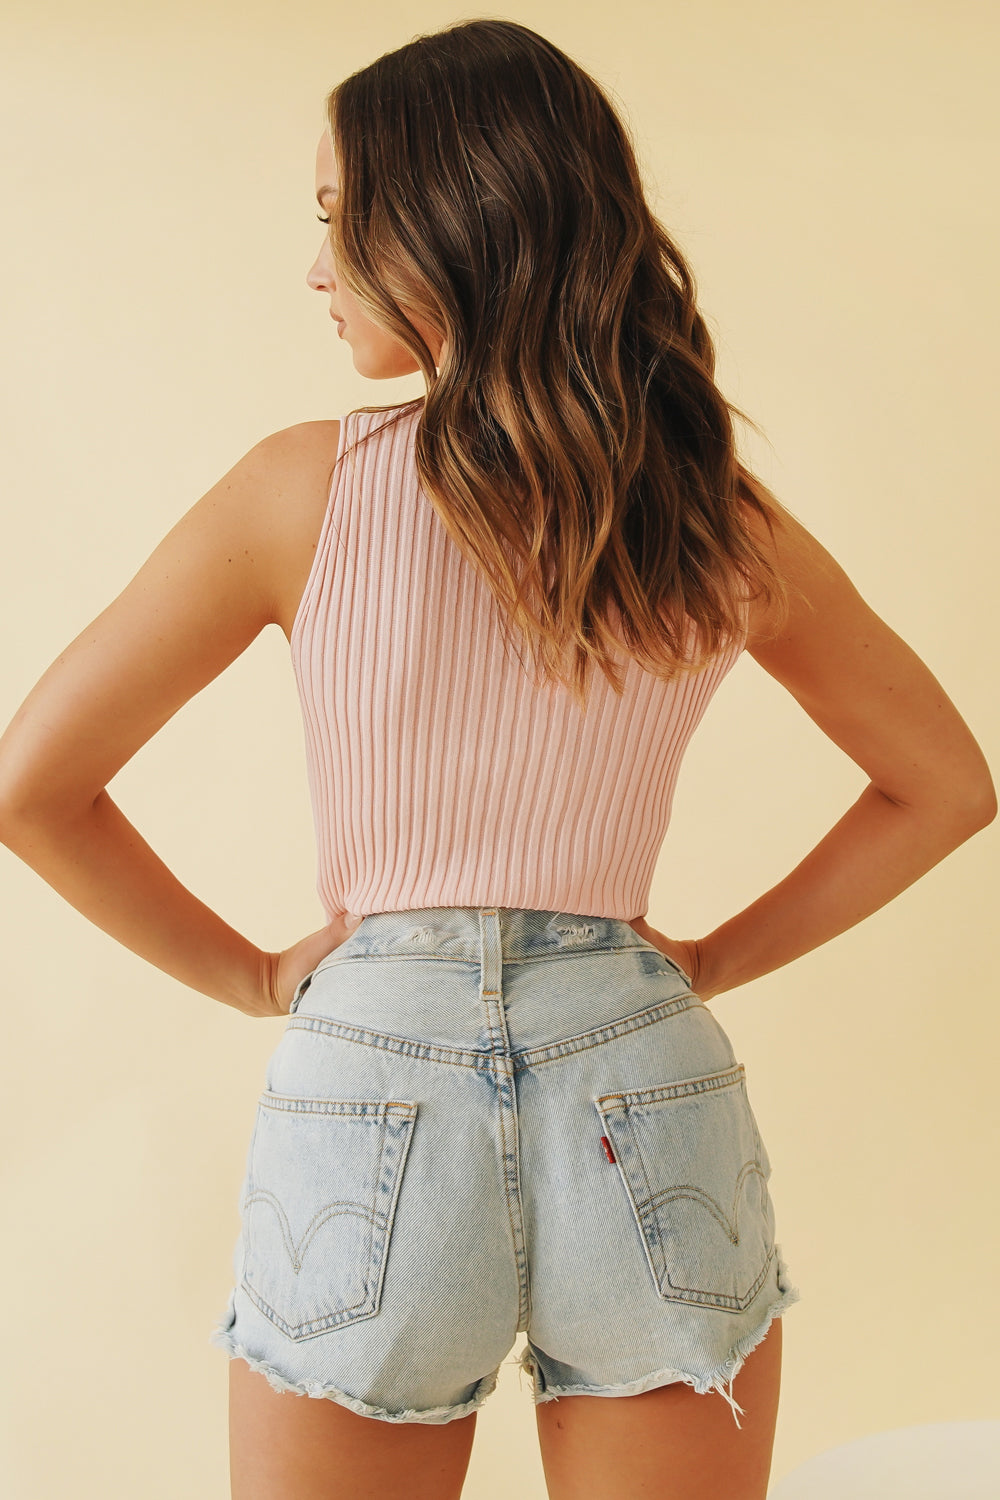 Our Town Knit Top // Pink